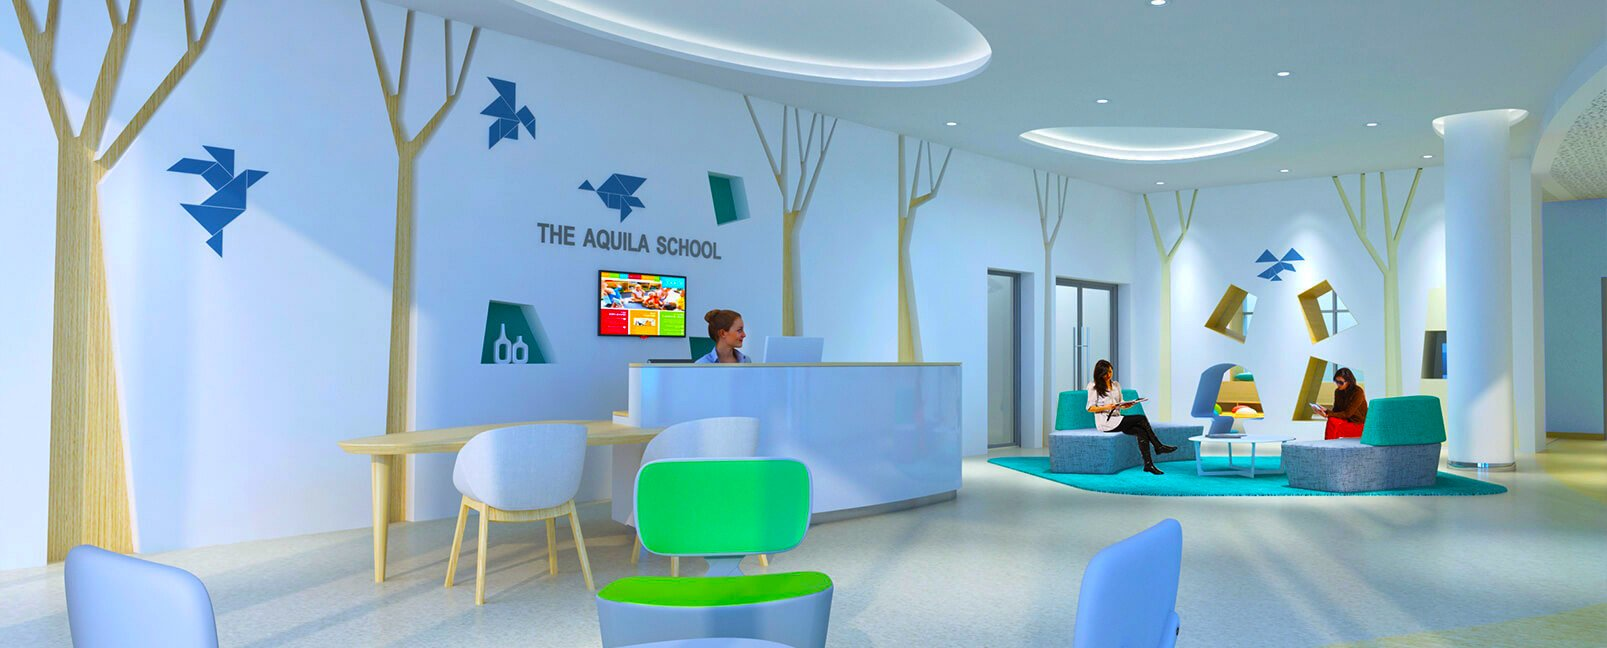 Image showing the Main Reception area of the Aquila School Dubai opening in September 2018